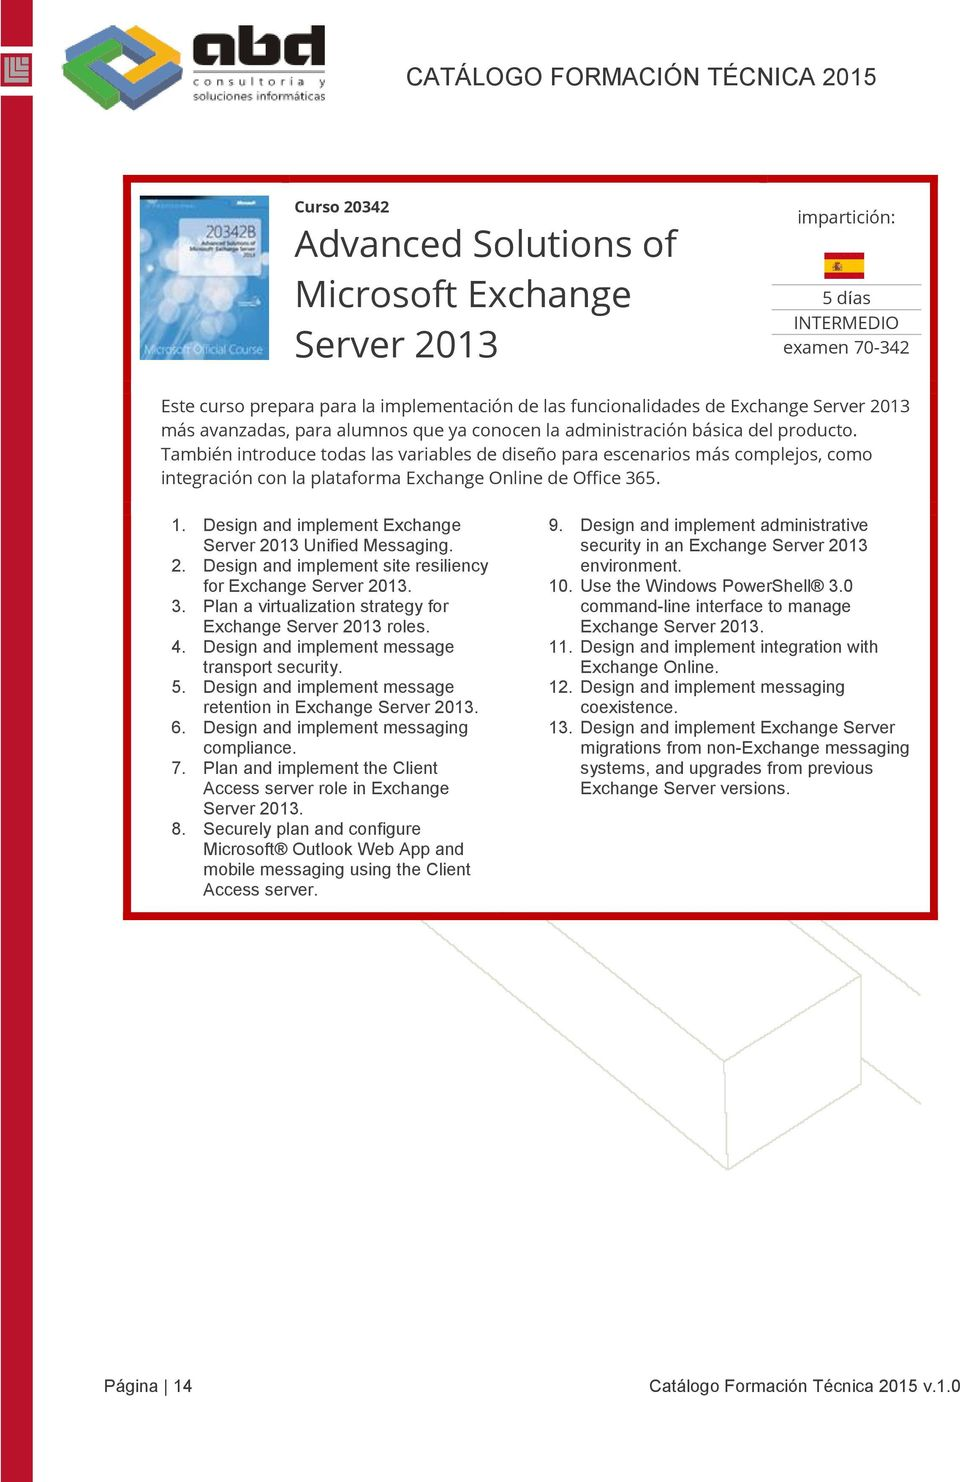 Design and implement Exchange Server 2013 Unified Messaging. 2. Design and implement site resiliency for Exchange Server 2013. 3. Plan a virtualization strategy for Exchange Server 2013 roles. 4.